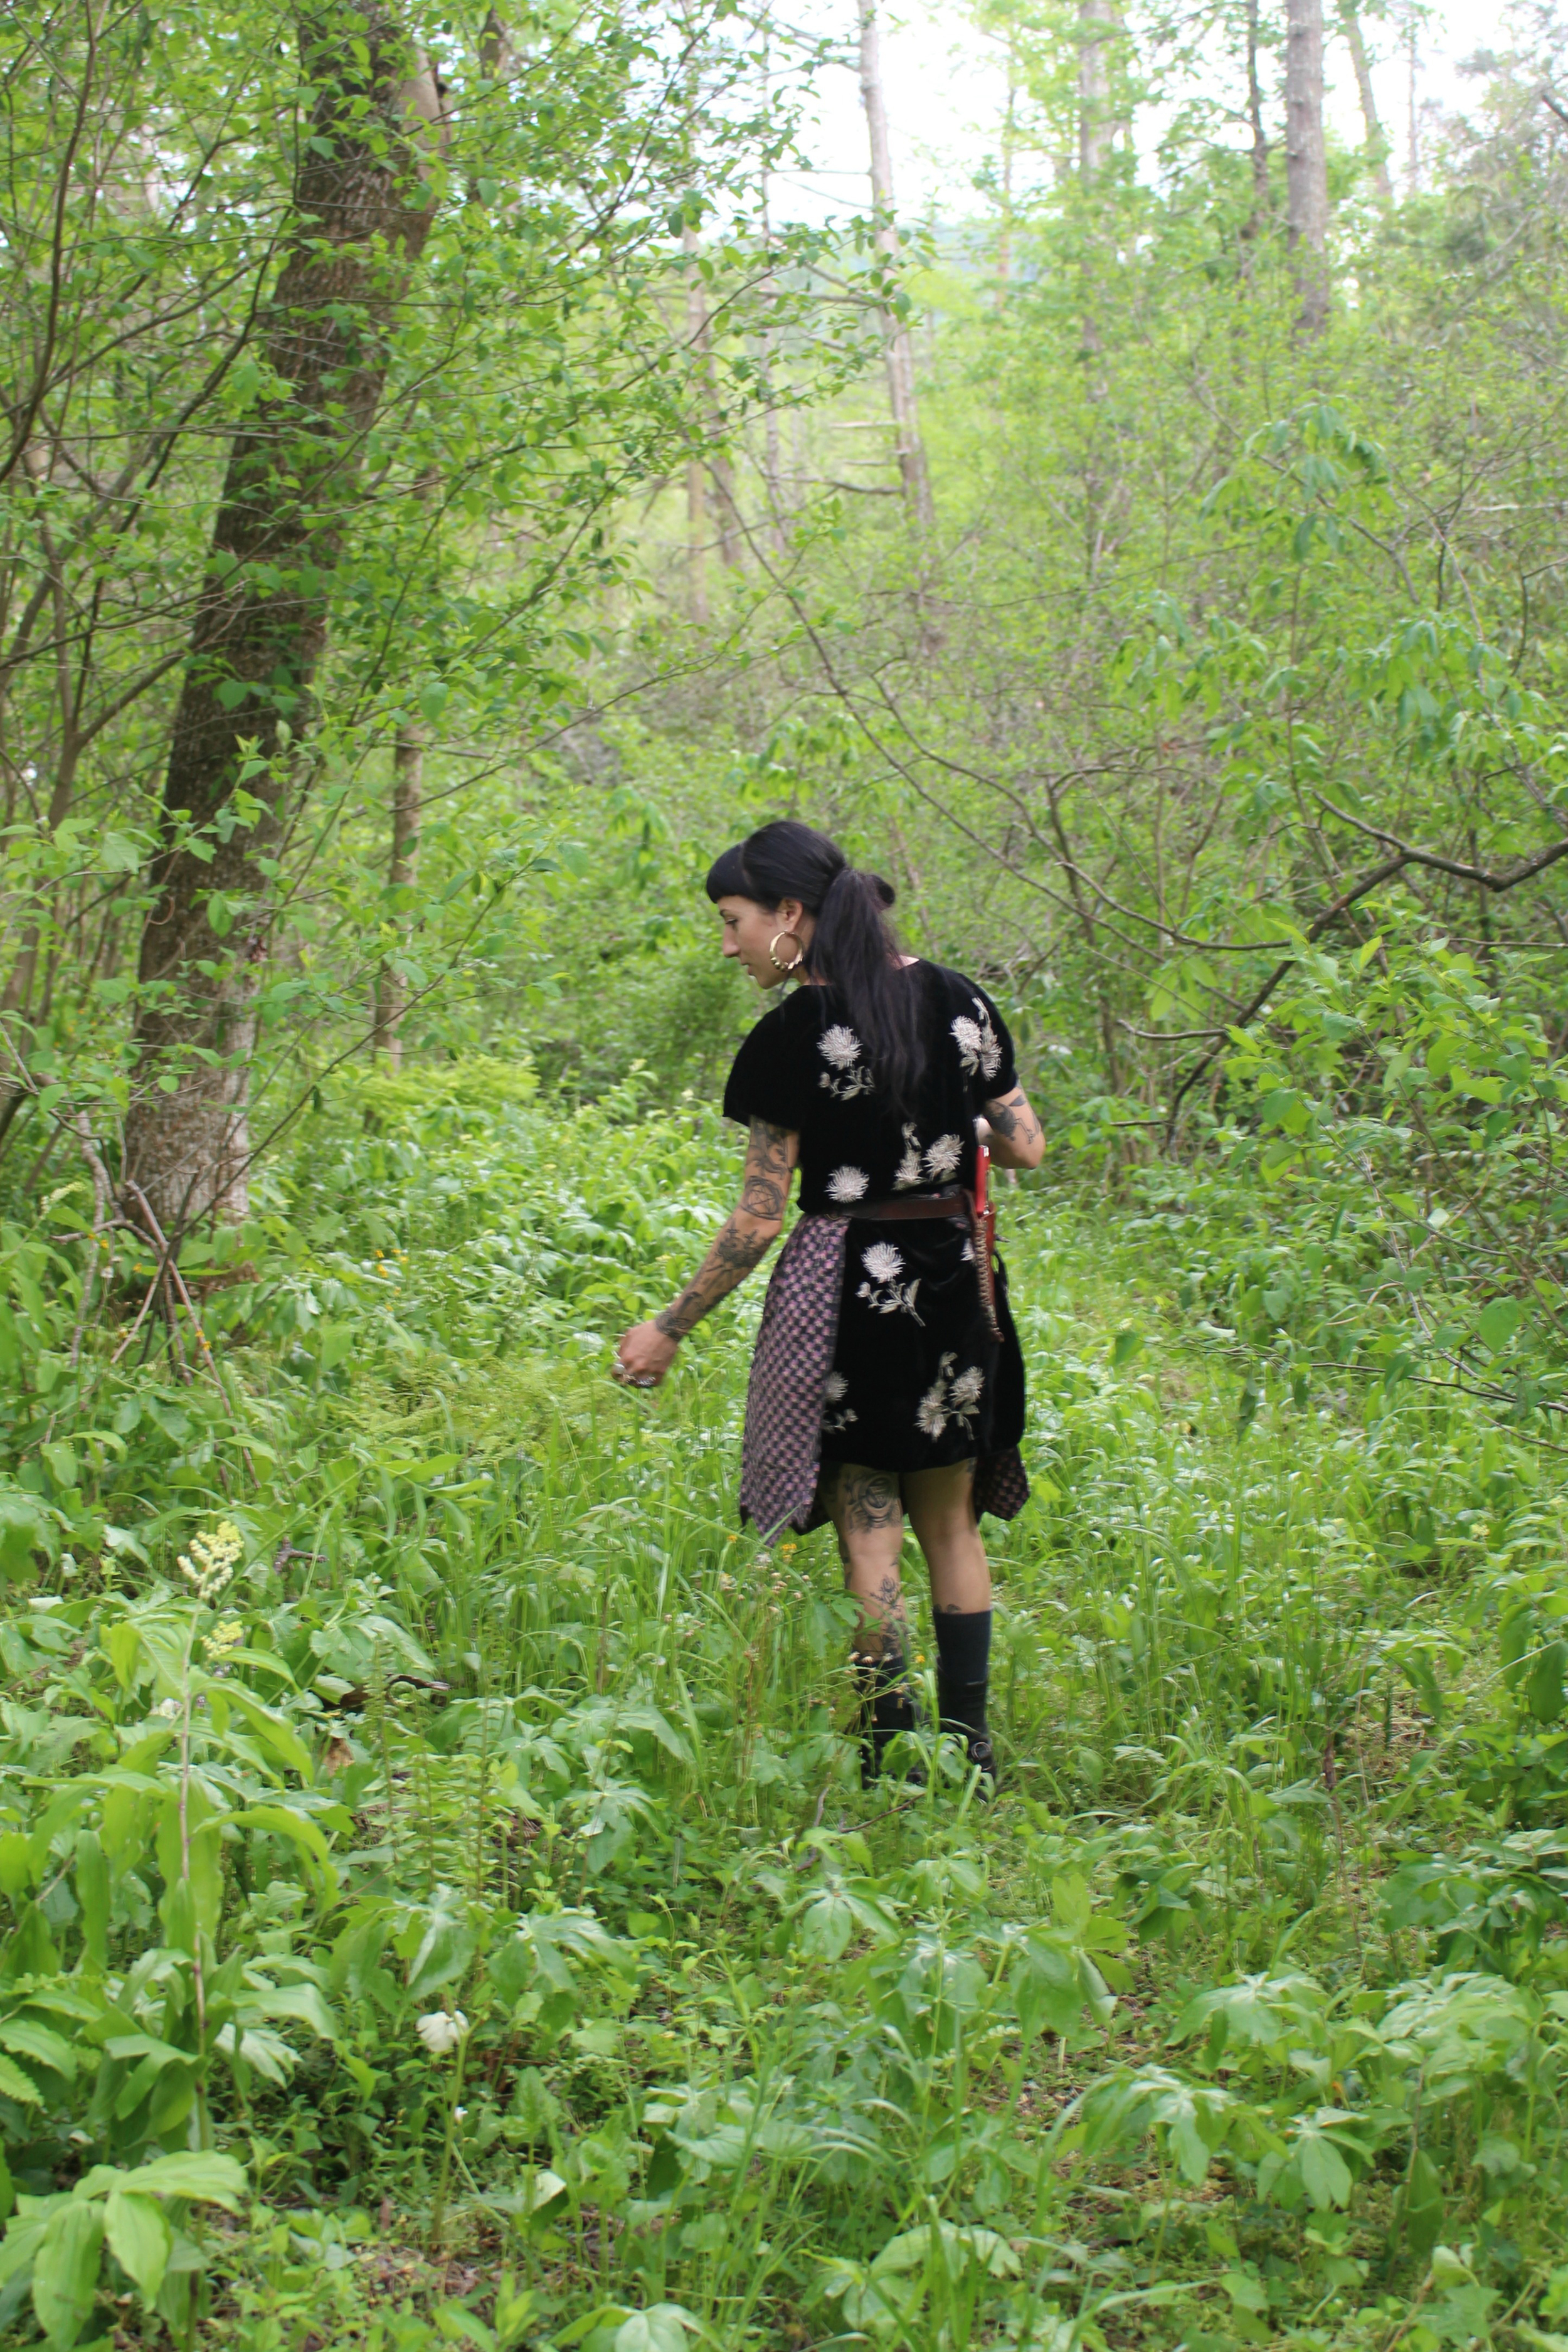 Ash Sierra wanders her PROPERty in search of medicinal plants